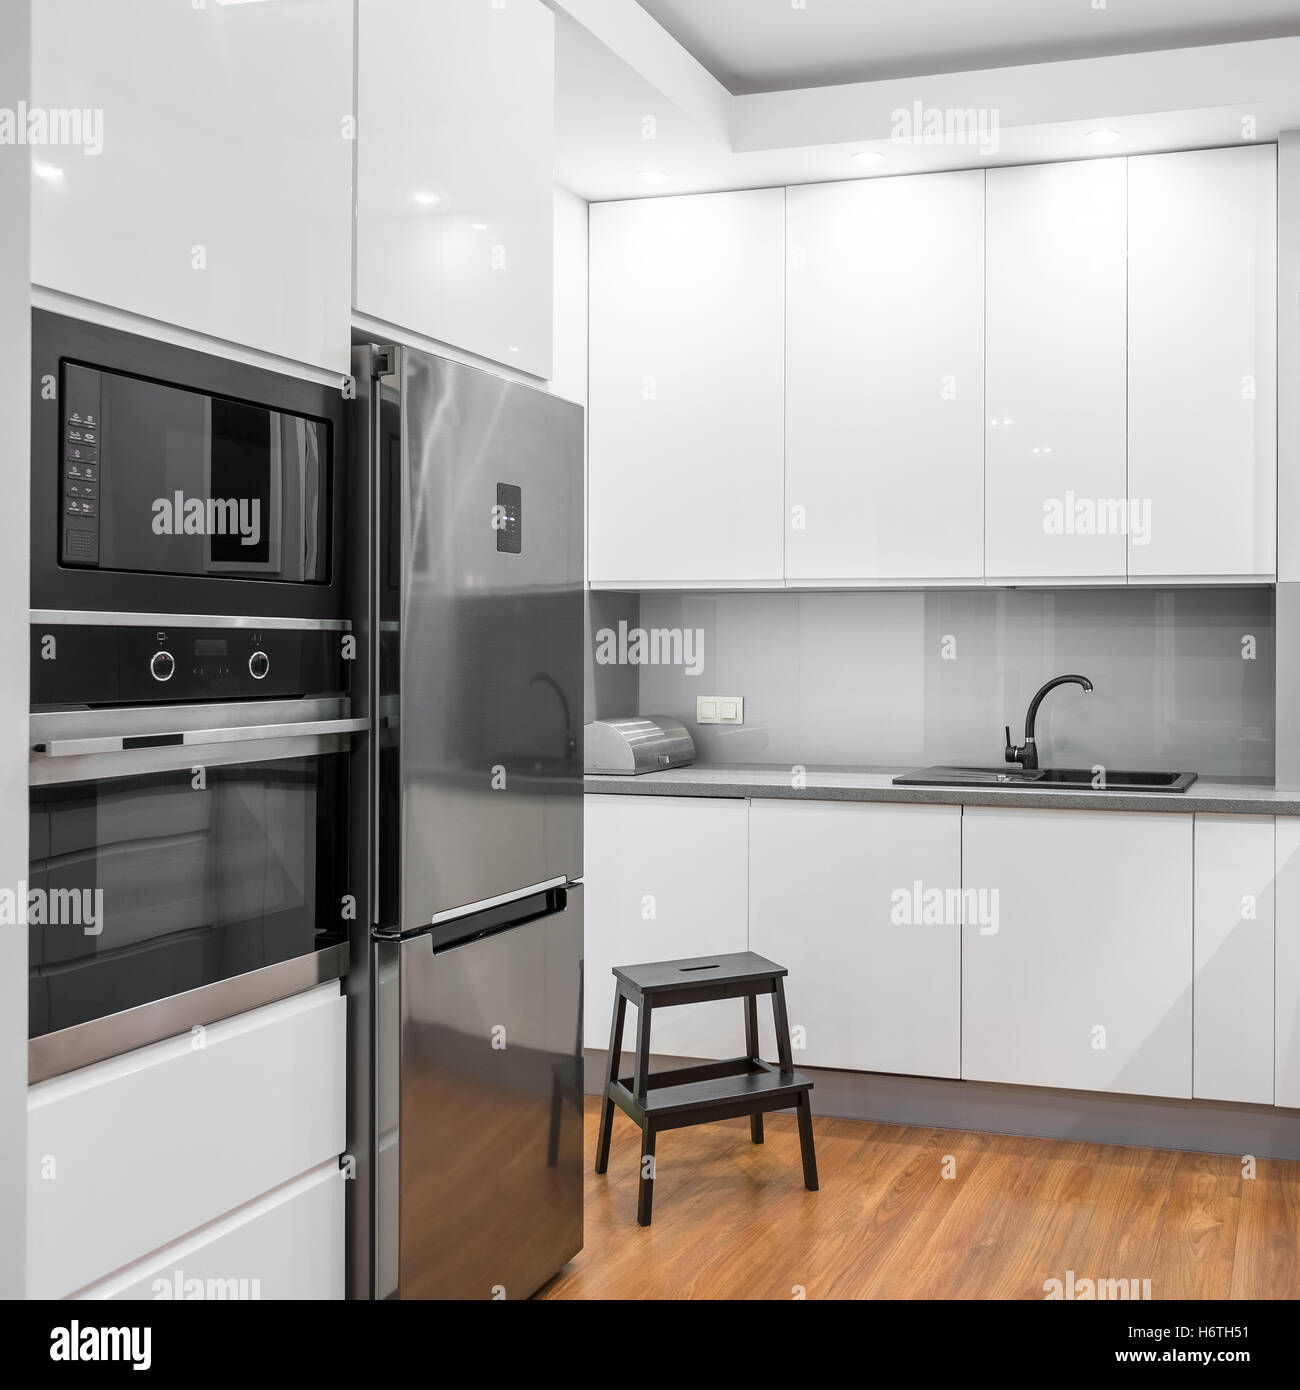 White High-gloss Kitchen With Silver Fridge, Oven And